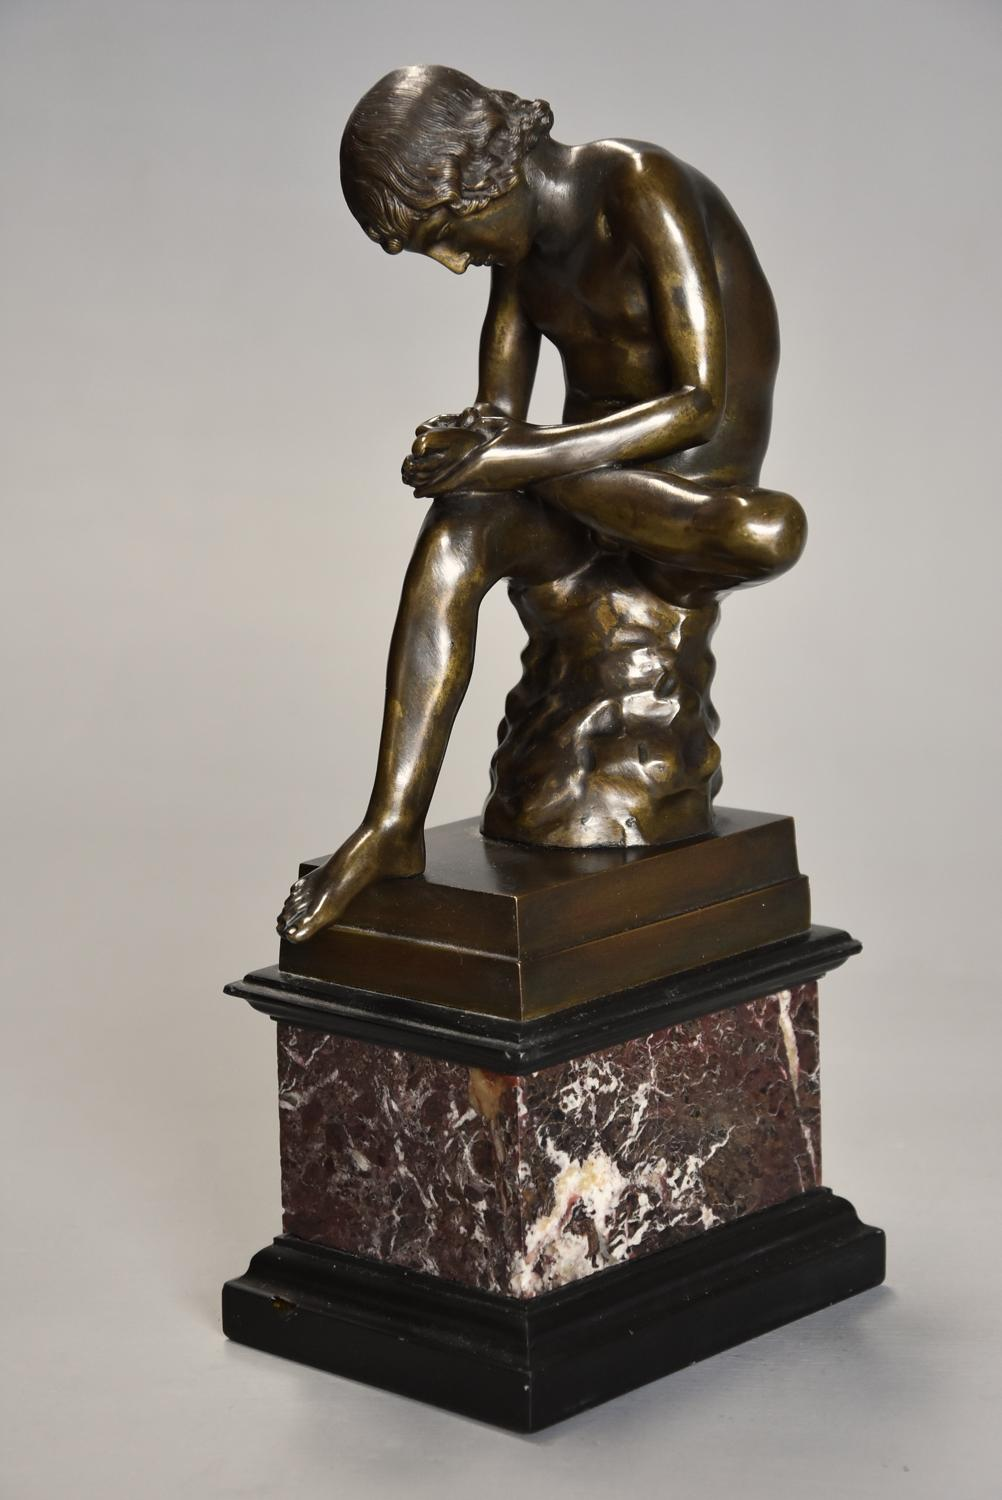 19thc French bronze figure of 'Spinario', after the Antique